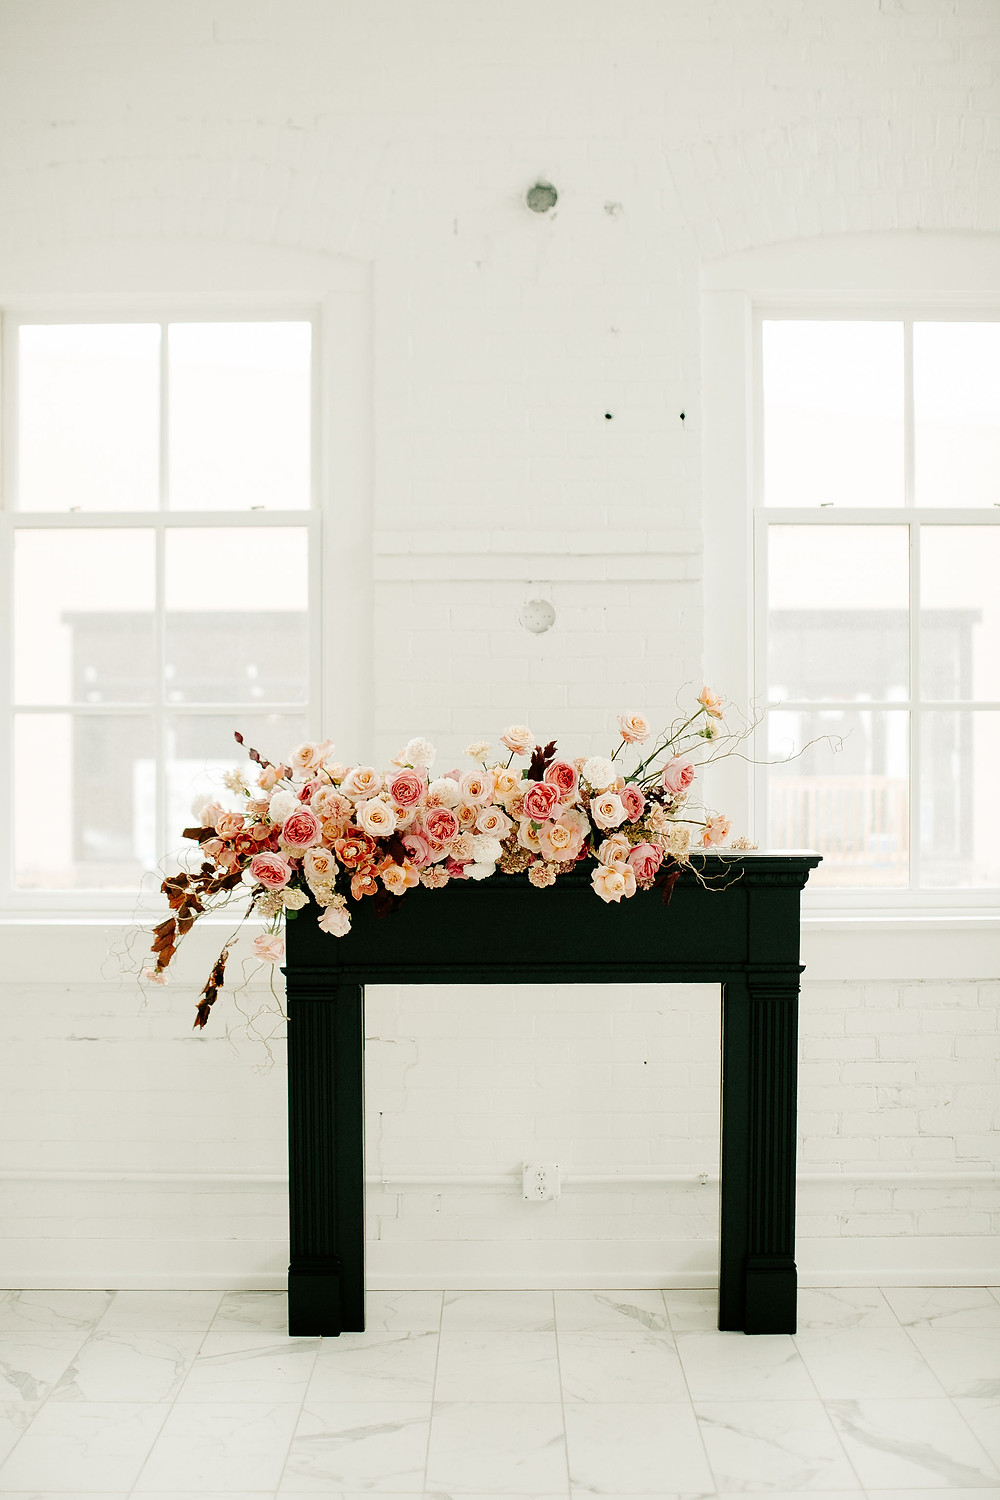 Studio Bloom Iowa wedding florist pink and peach large flower arrangement on black fireplace mantel with roses and carnations